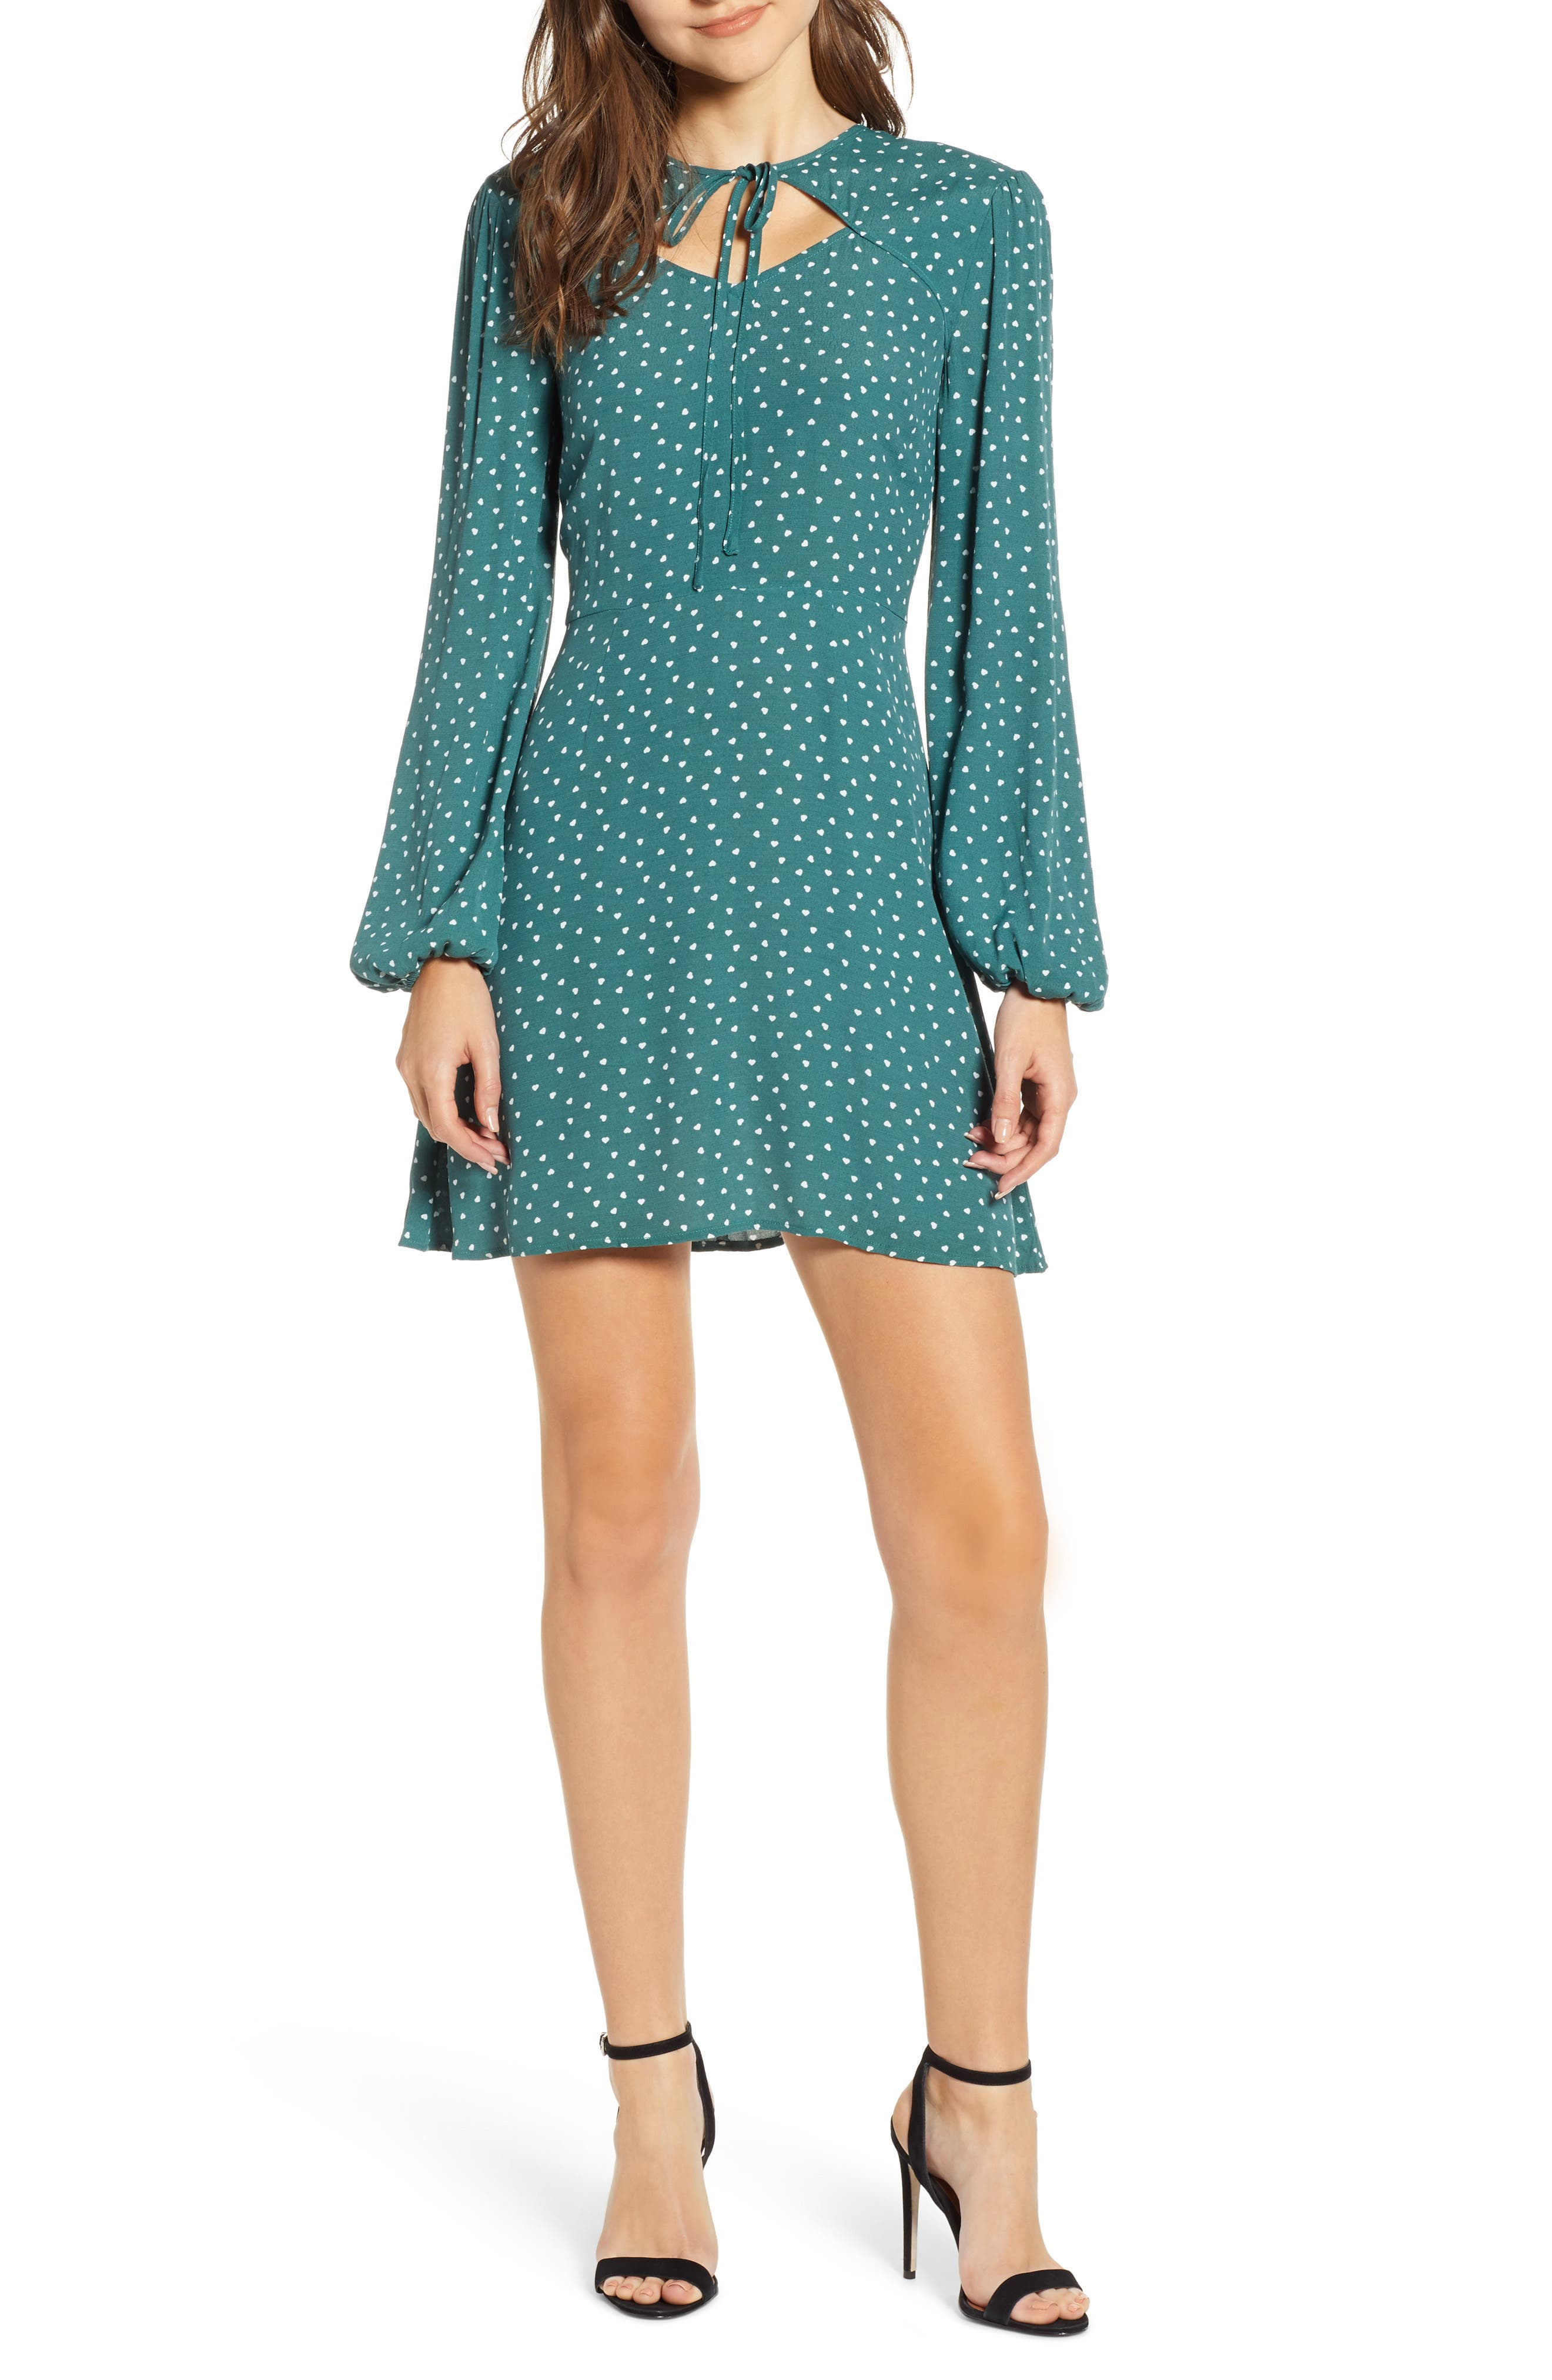 The Fifth Label Amore Heart Print Cutout Minidress, Green